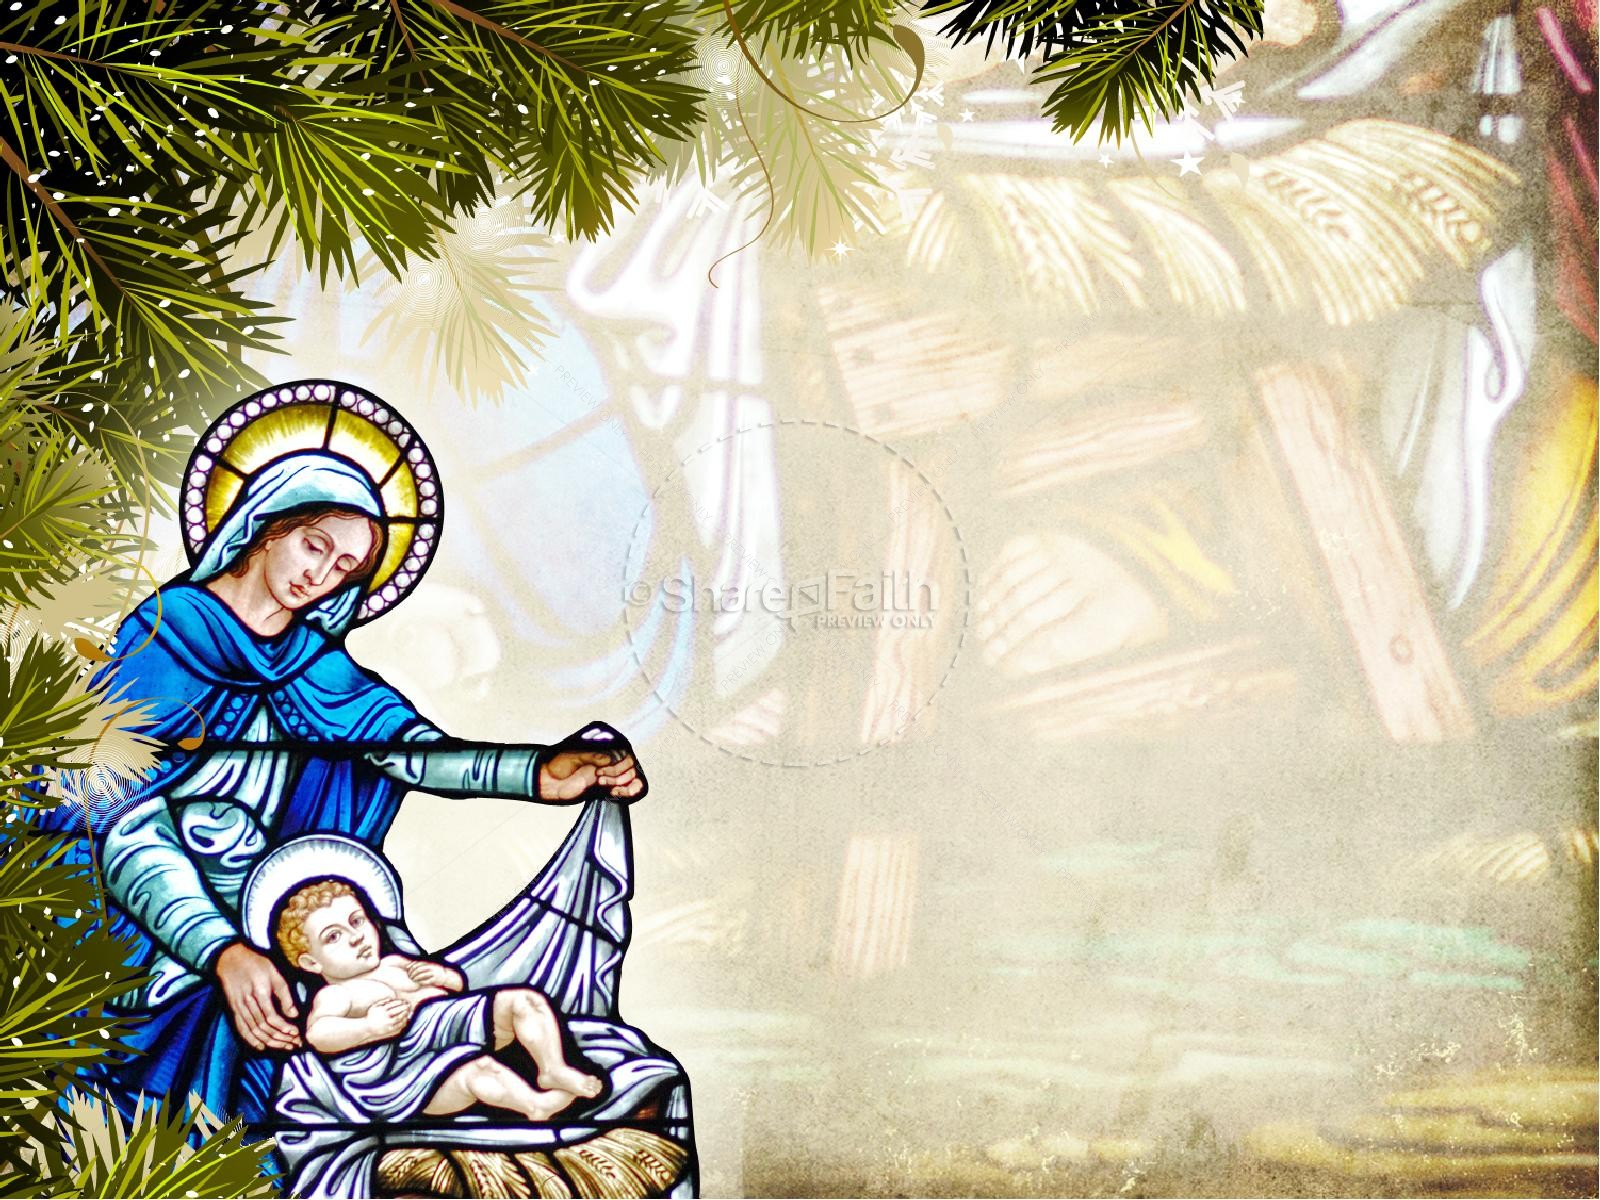 nativity scene wallpaper u00b7 u2460 wallpapertag